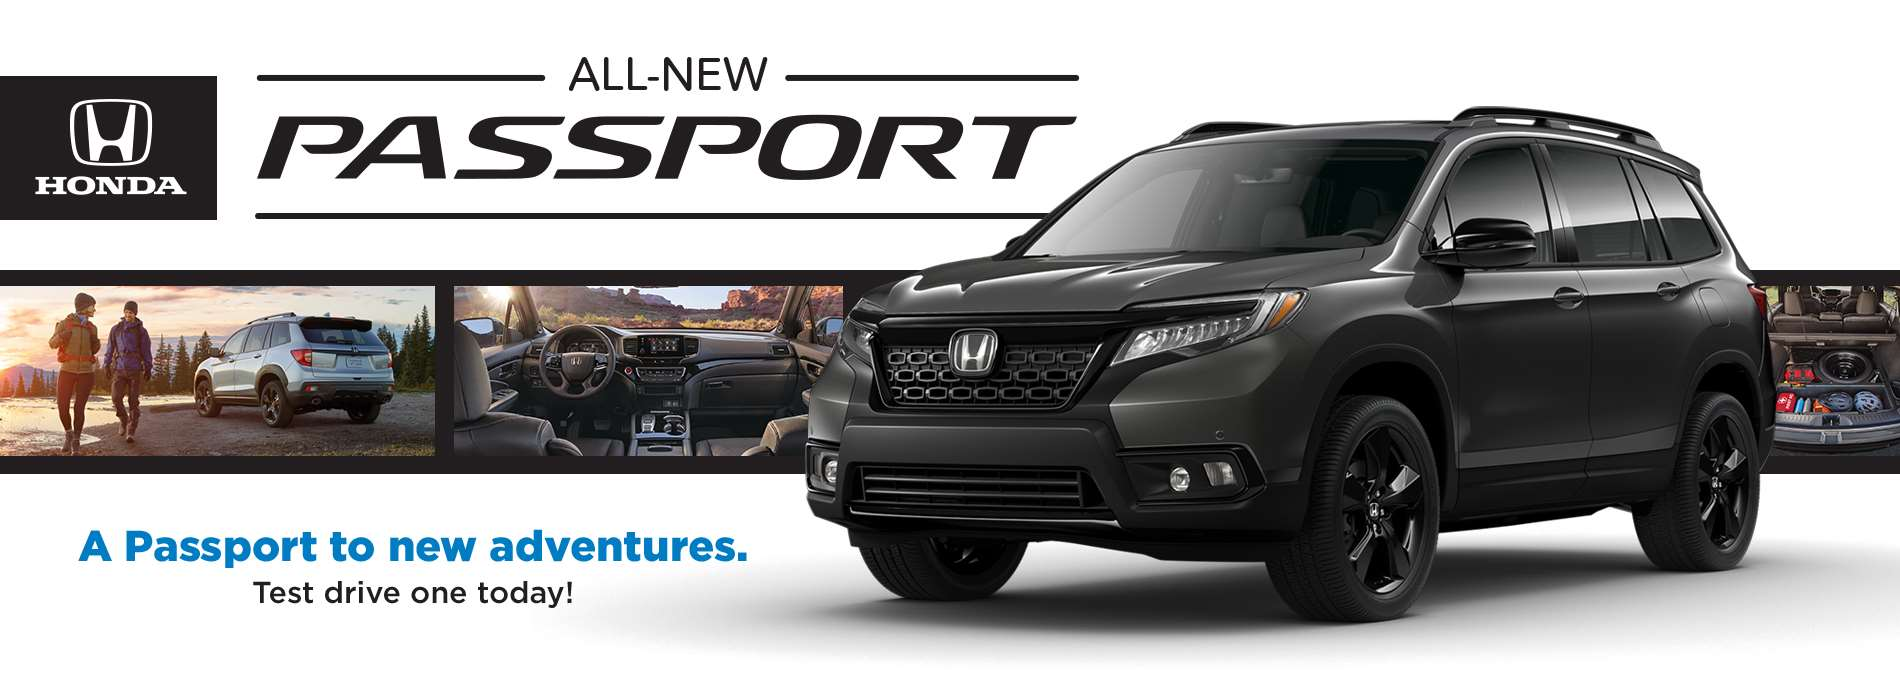 Honda SF - All-New Passport - Feb 2019